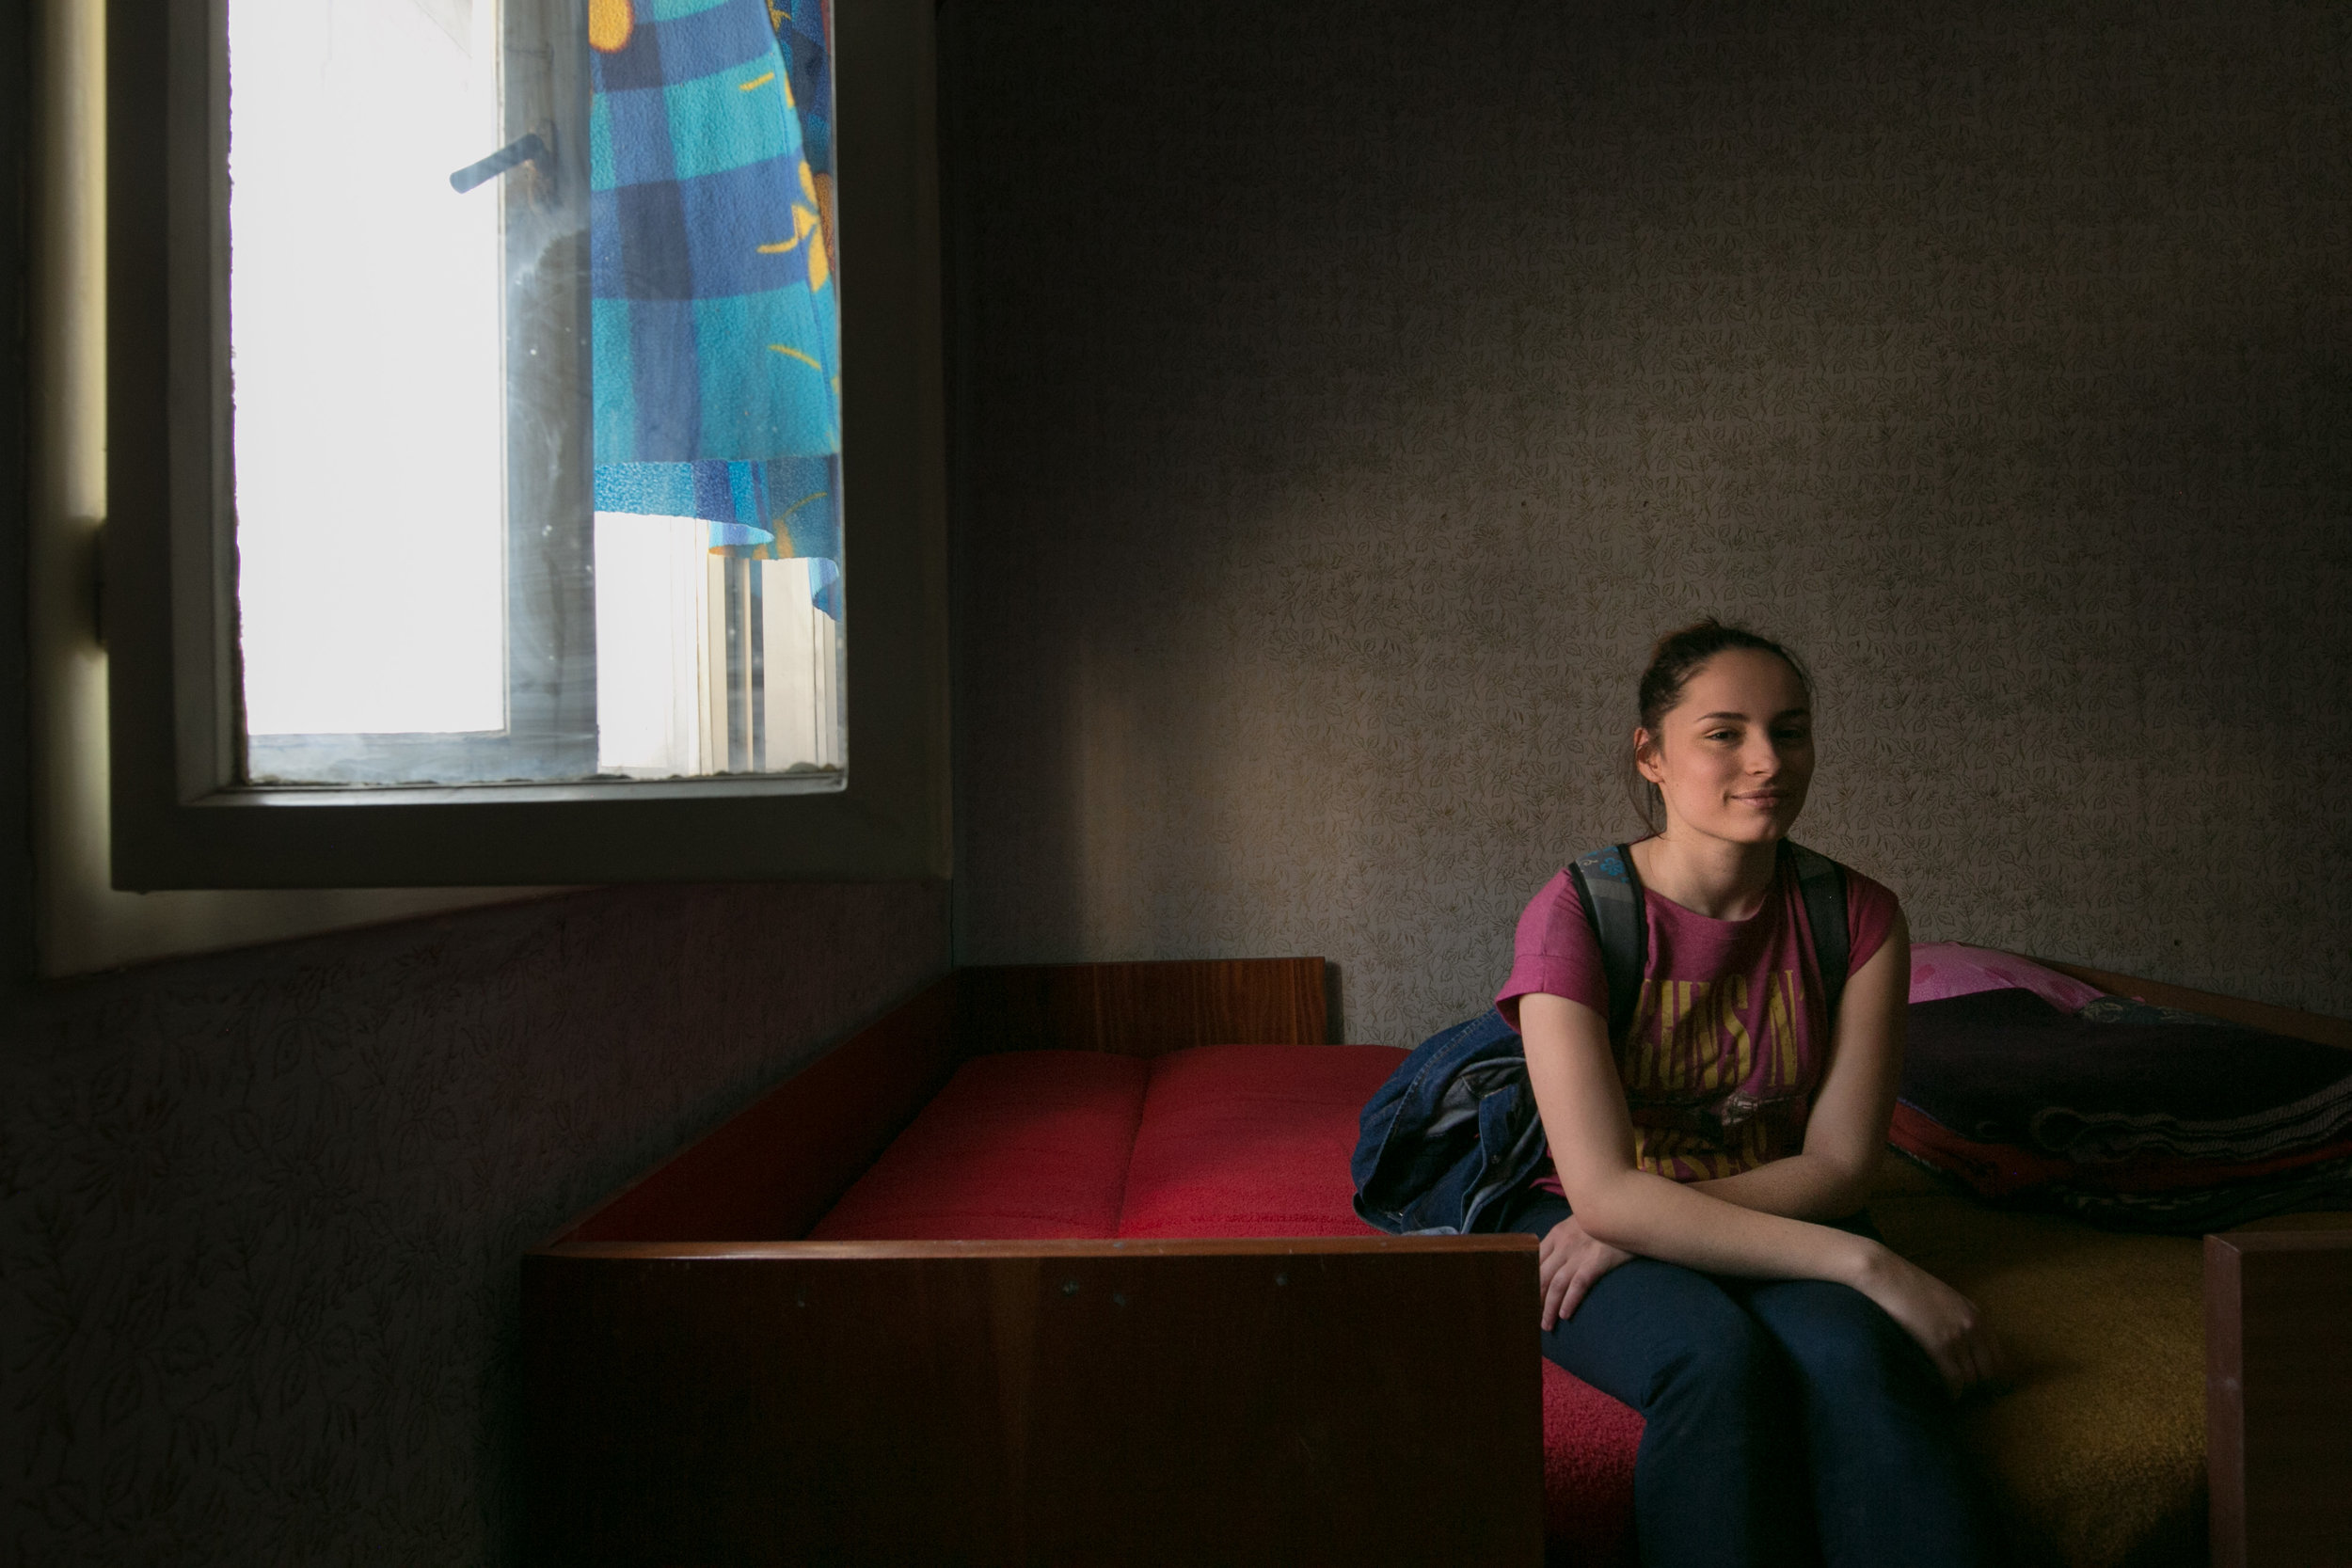 South Serbia's Youth Look to a Future That Blurs Ethnic Division -